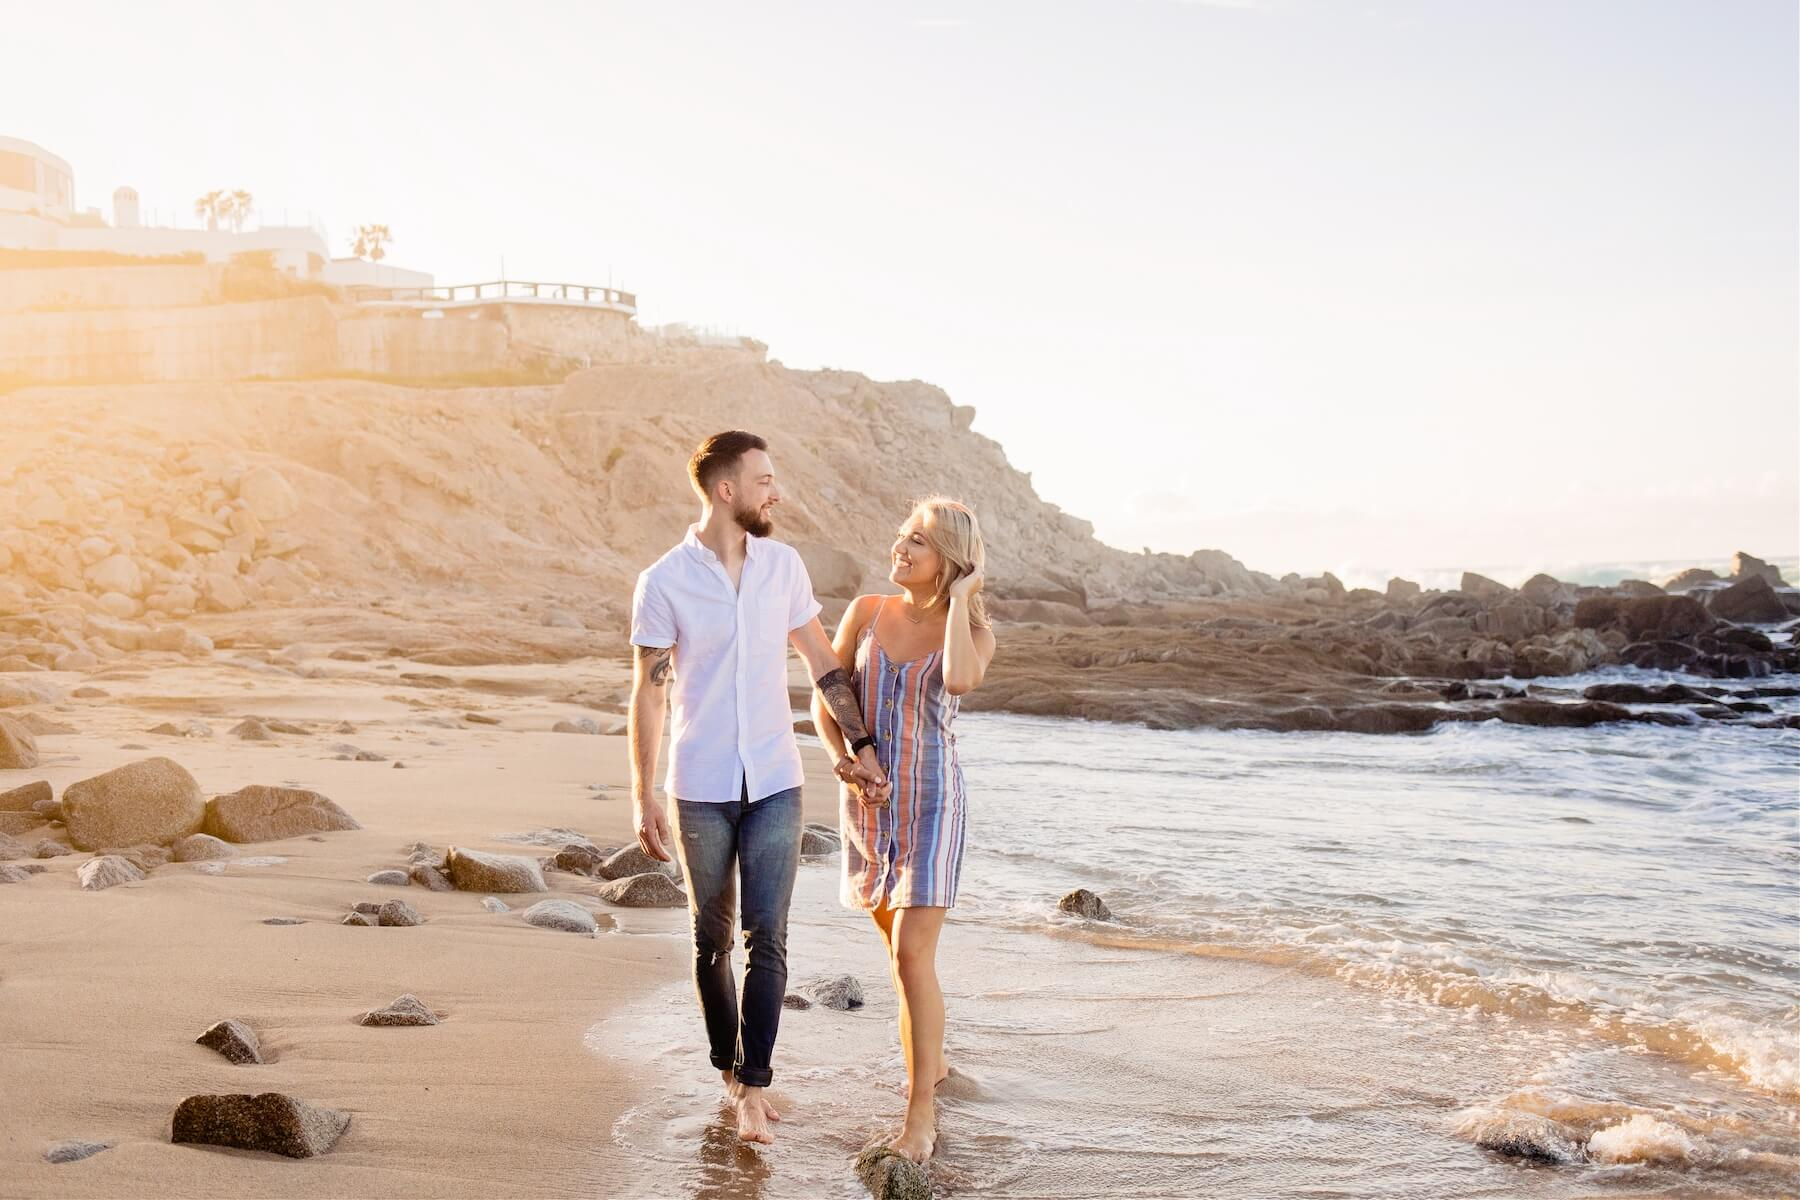 Couple vacation surprise proposal photoshoot in Cabo San Lucas Mexico